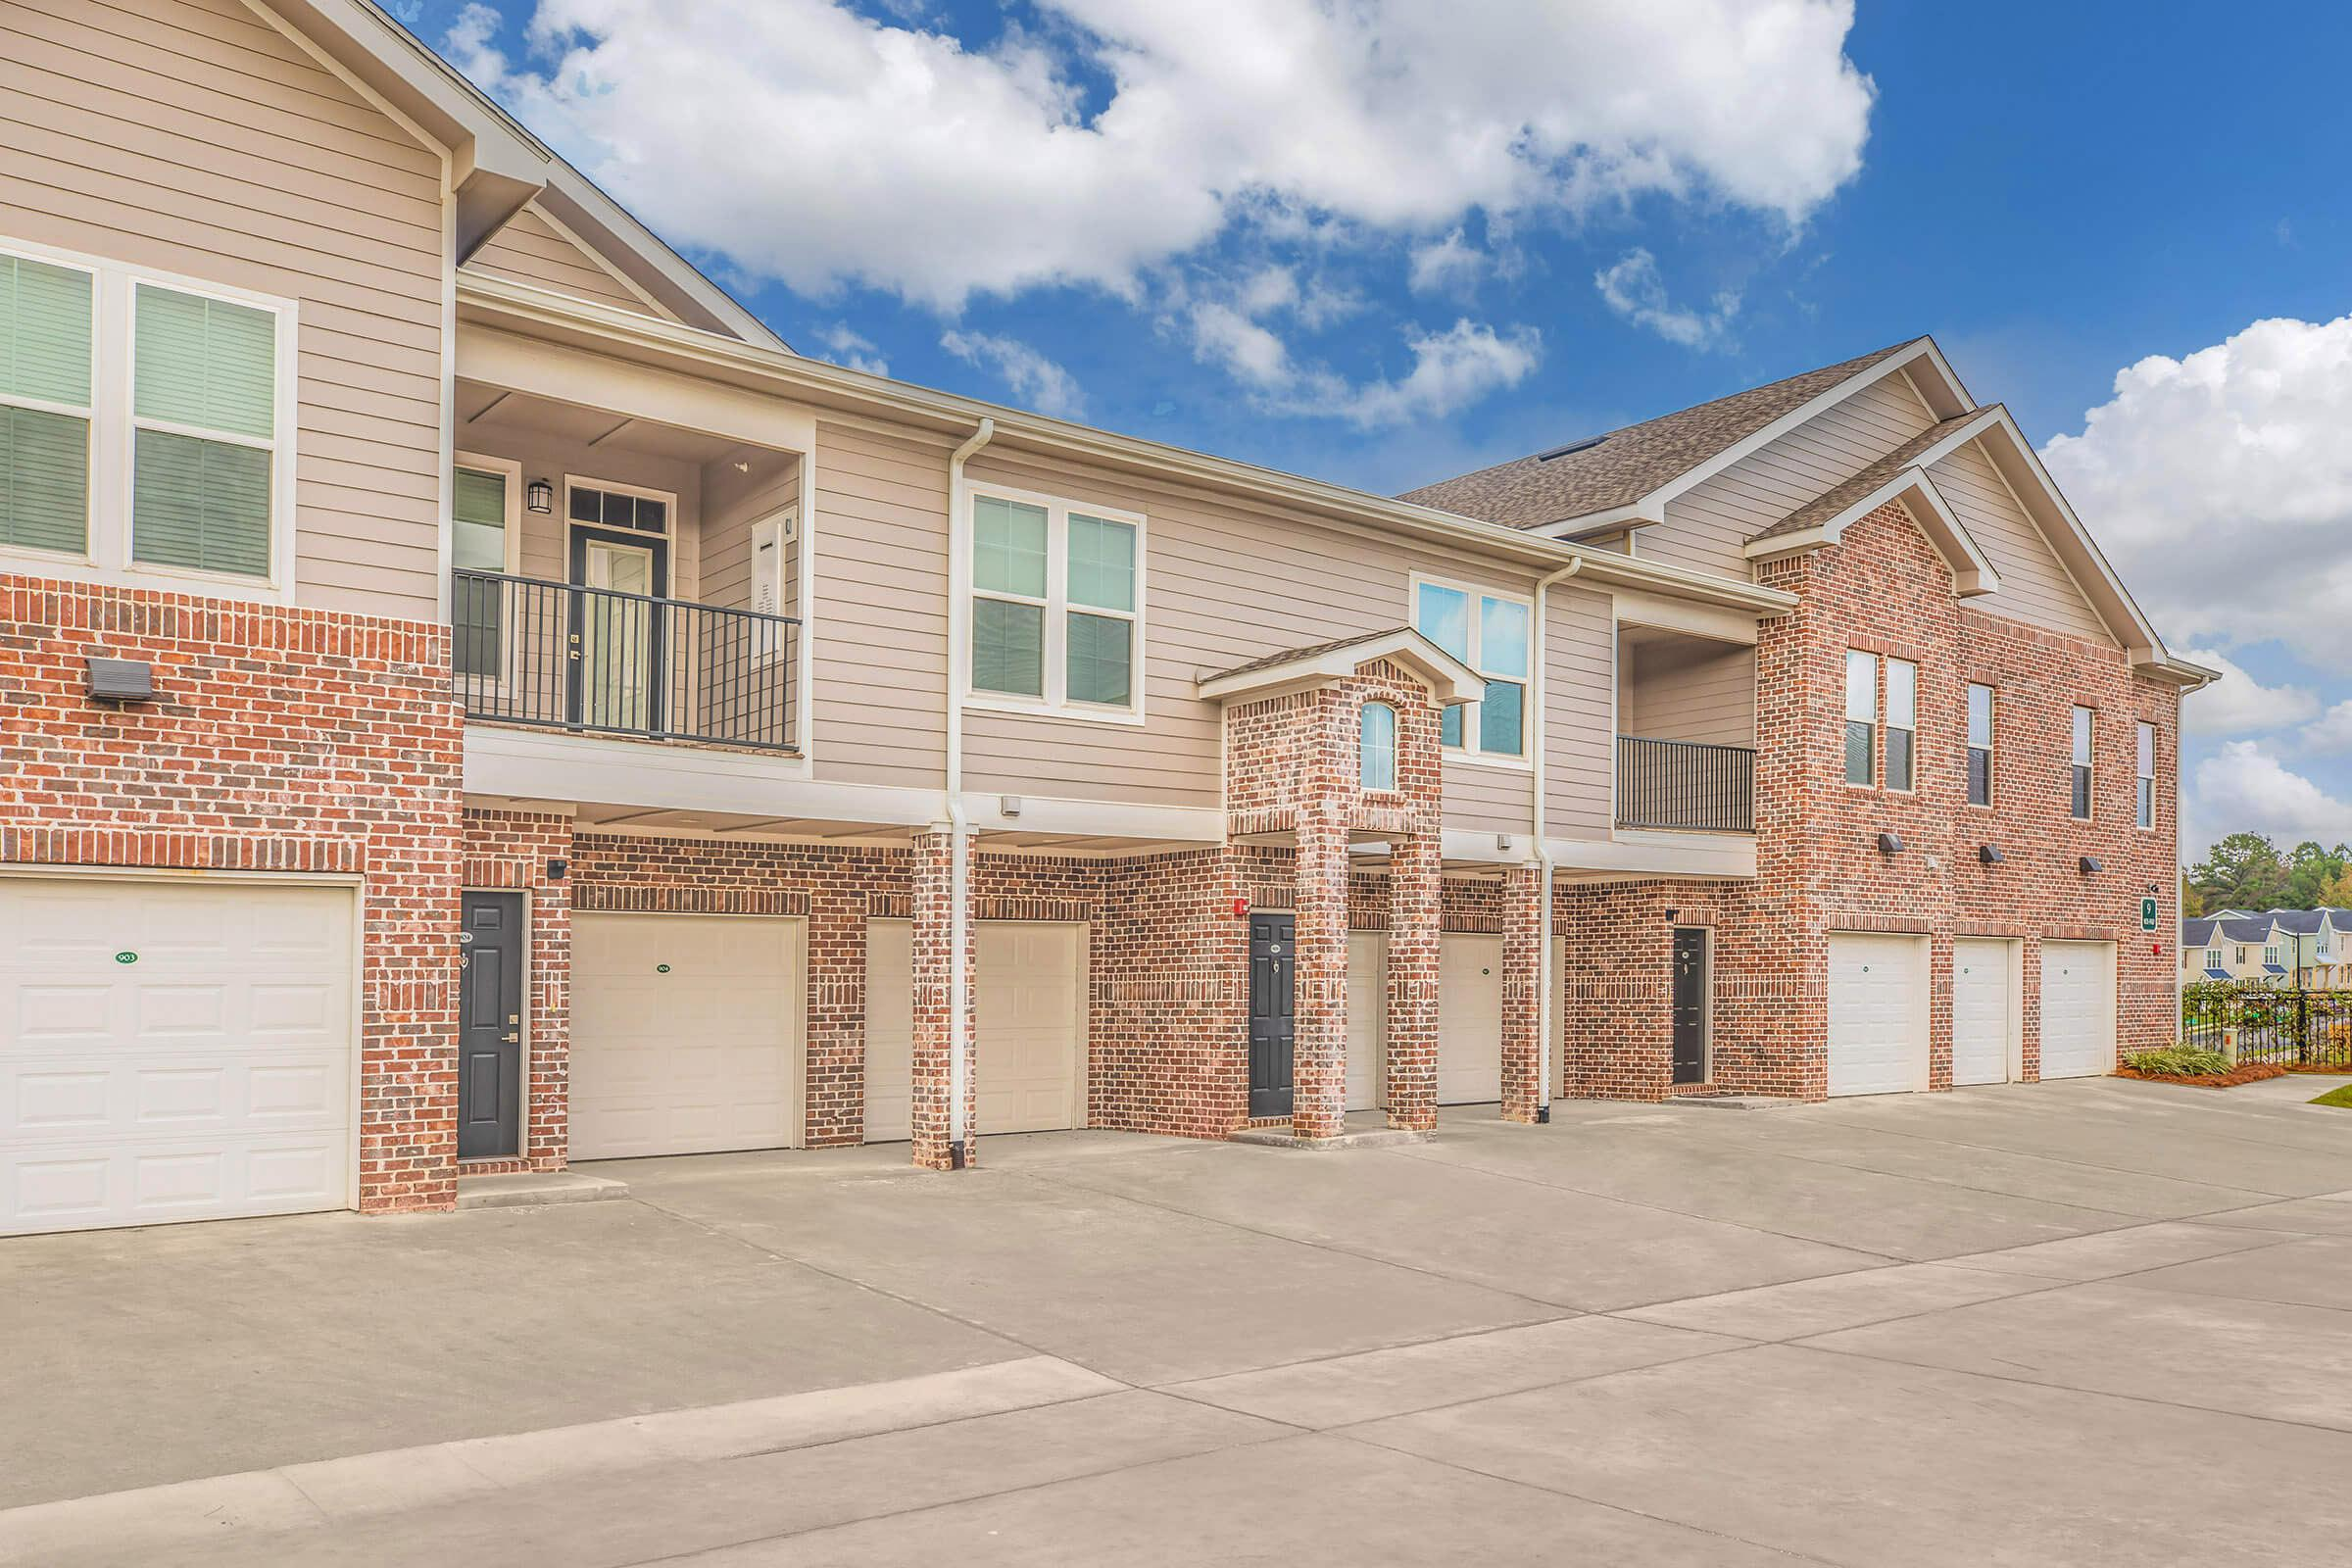 ONE, TWO, AND THREE BEDROOM APARTMENTS FOR RENT IN TALLAHASSEE, FL